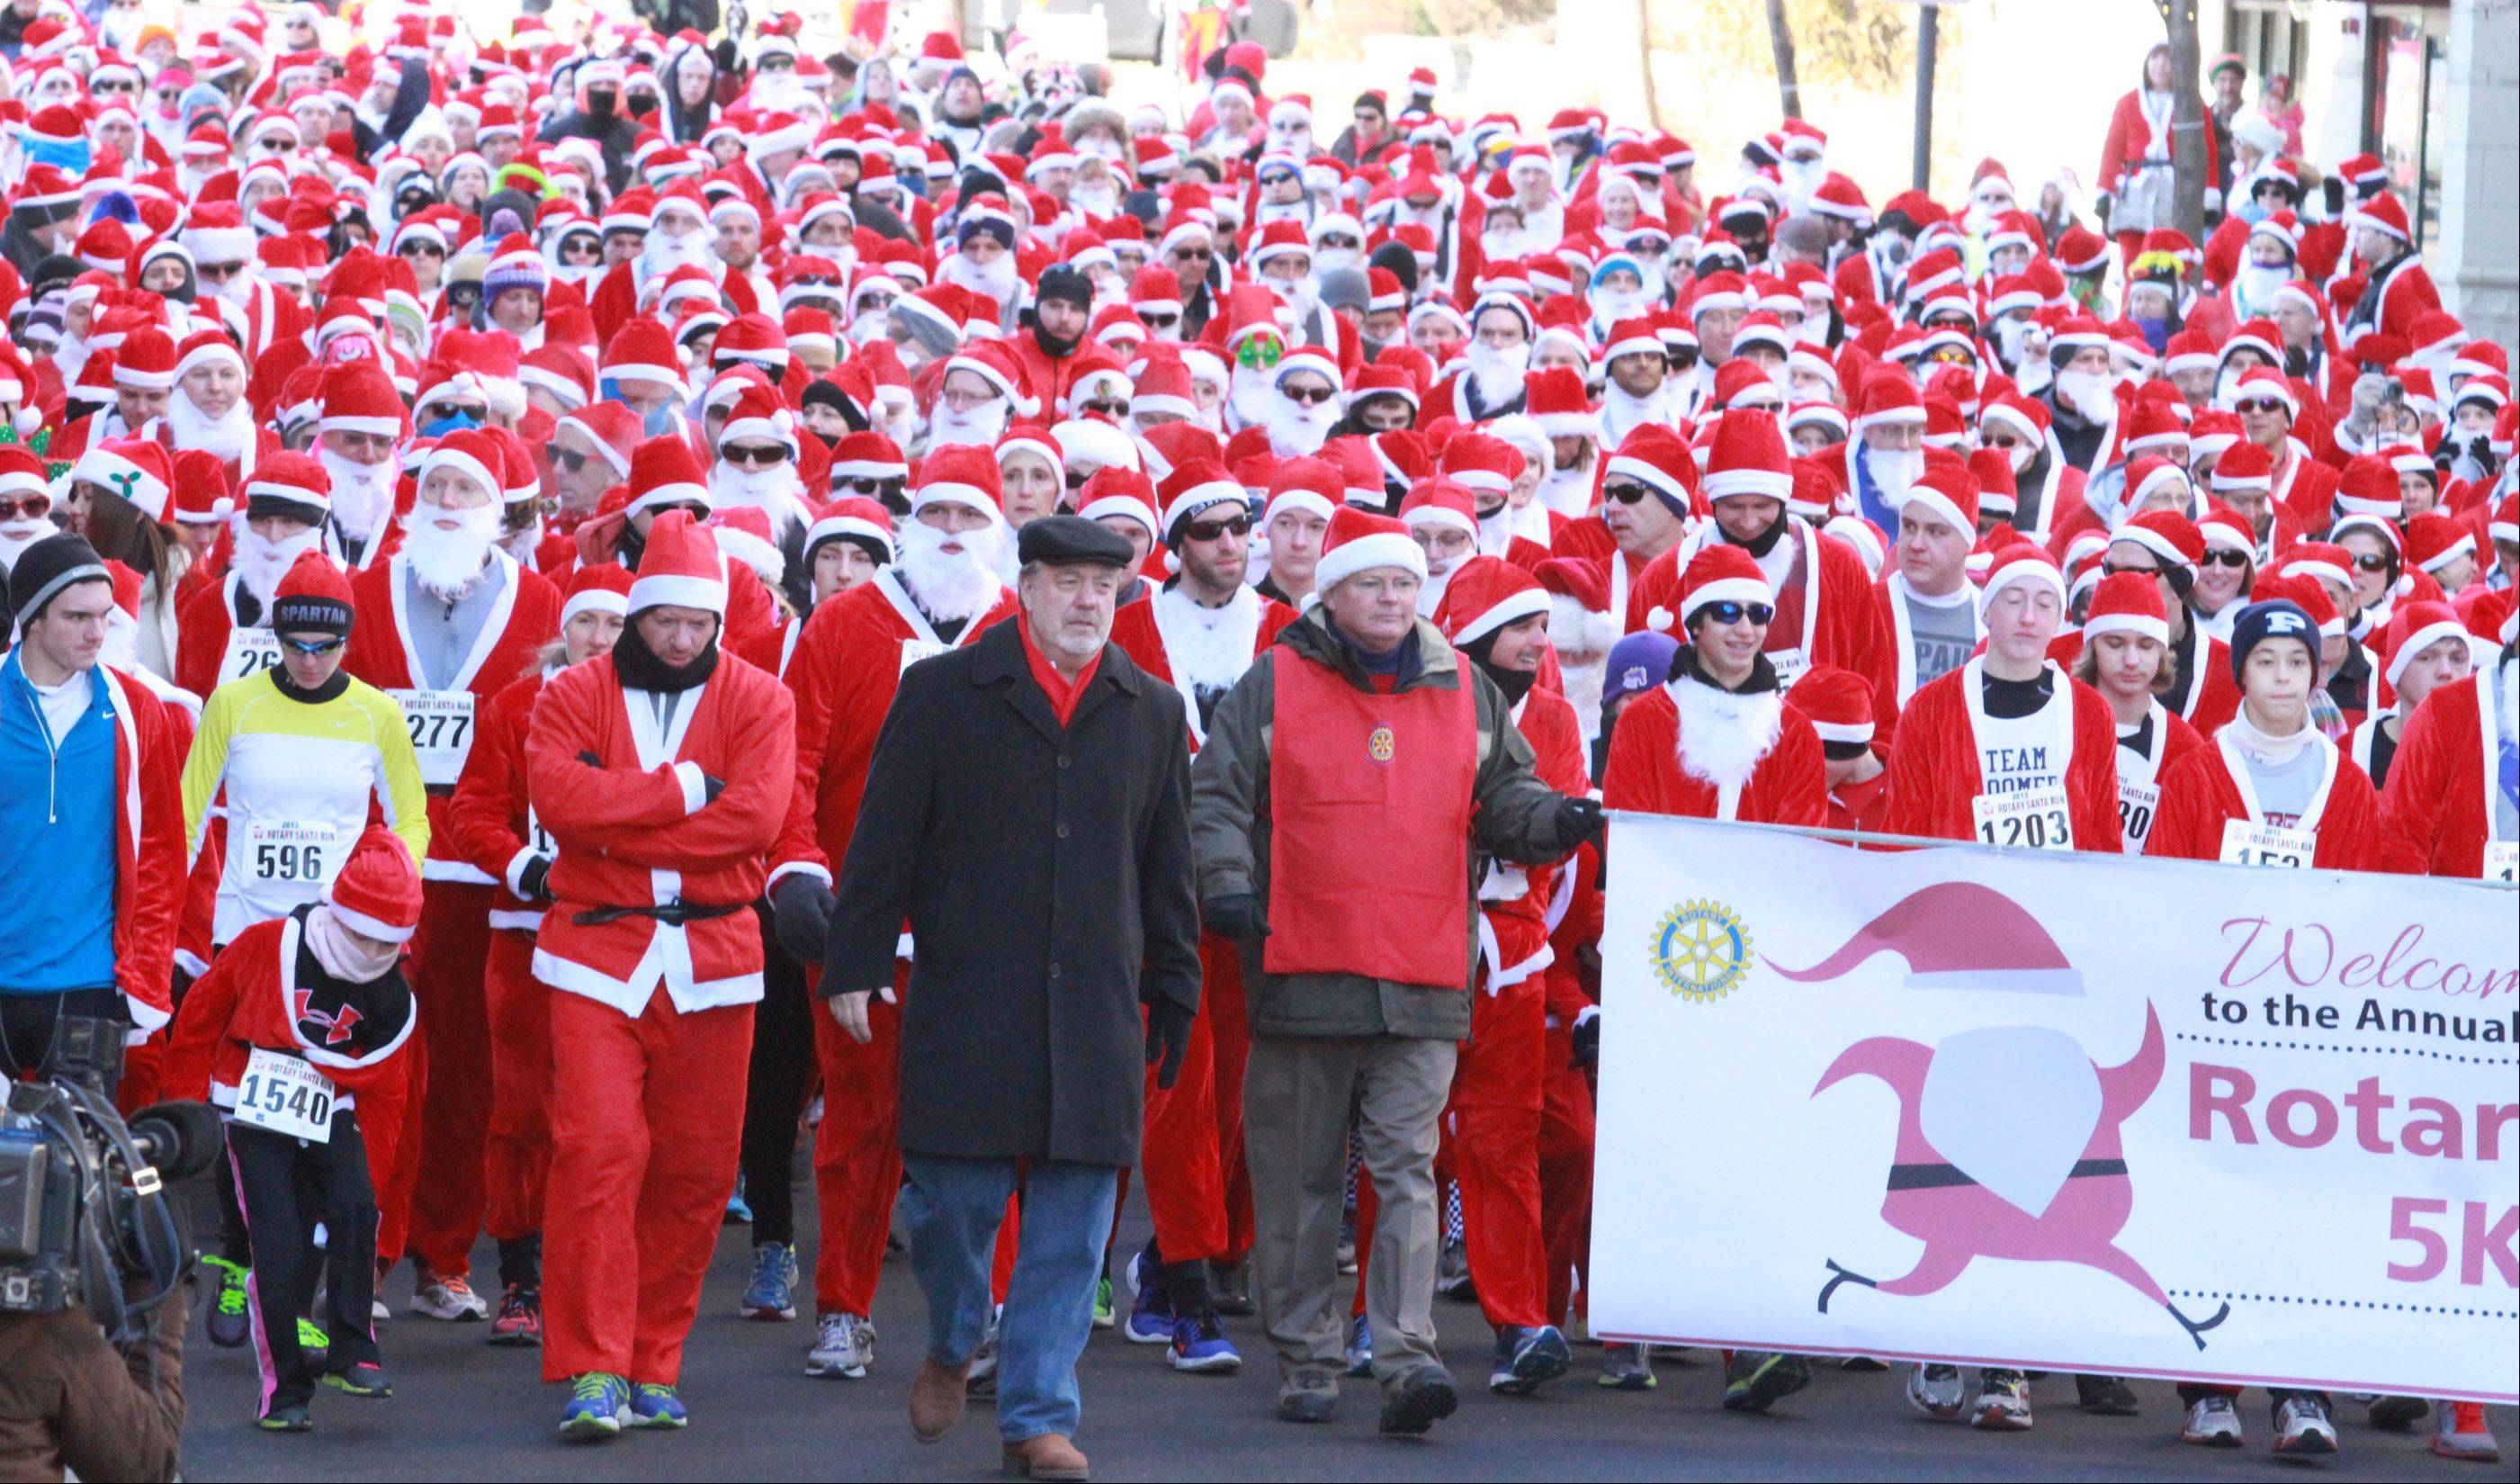 Over 1,600 runners started the Rotary 5K Santa run on Saturday by running the first block at Campbell Street and Vail Avenue in Arlington Heights.